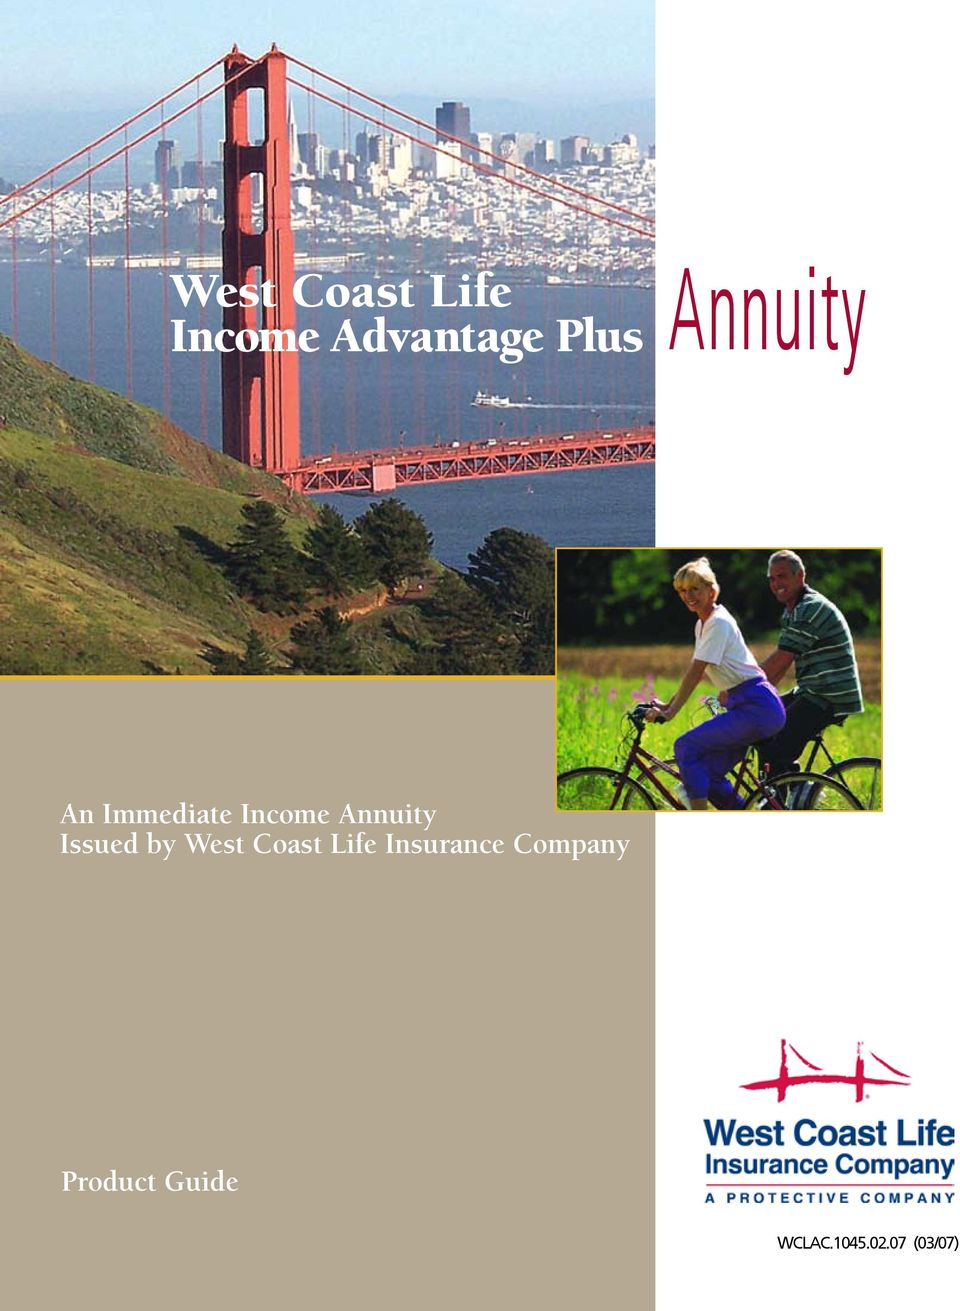 Annuity Issued by West Coast Life